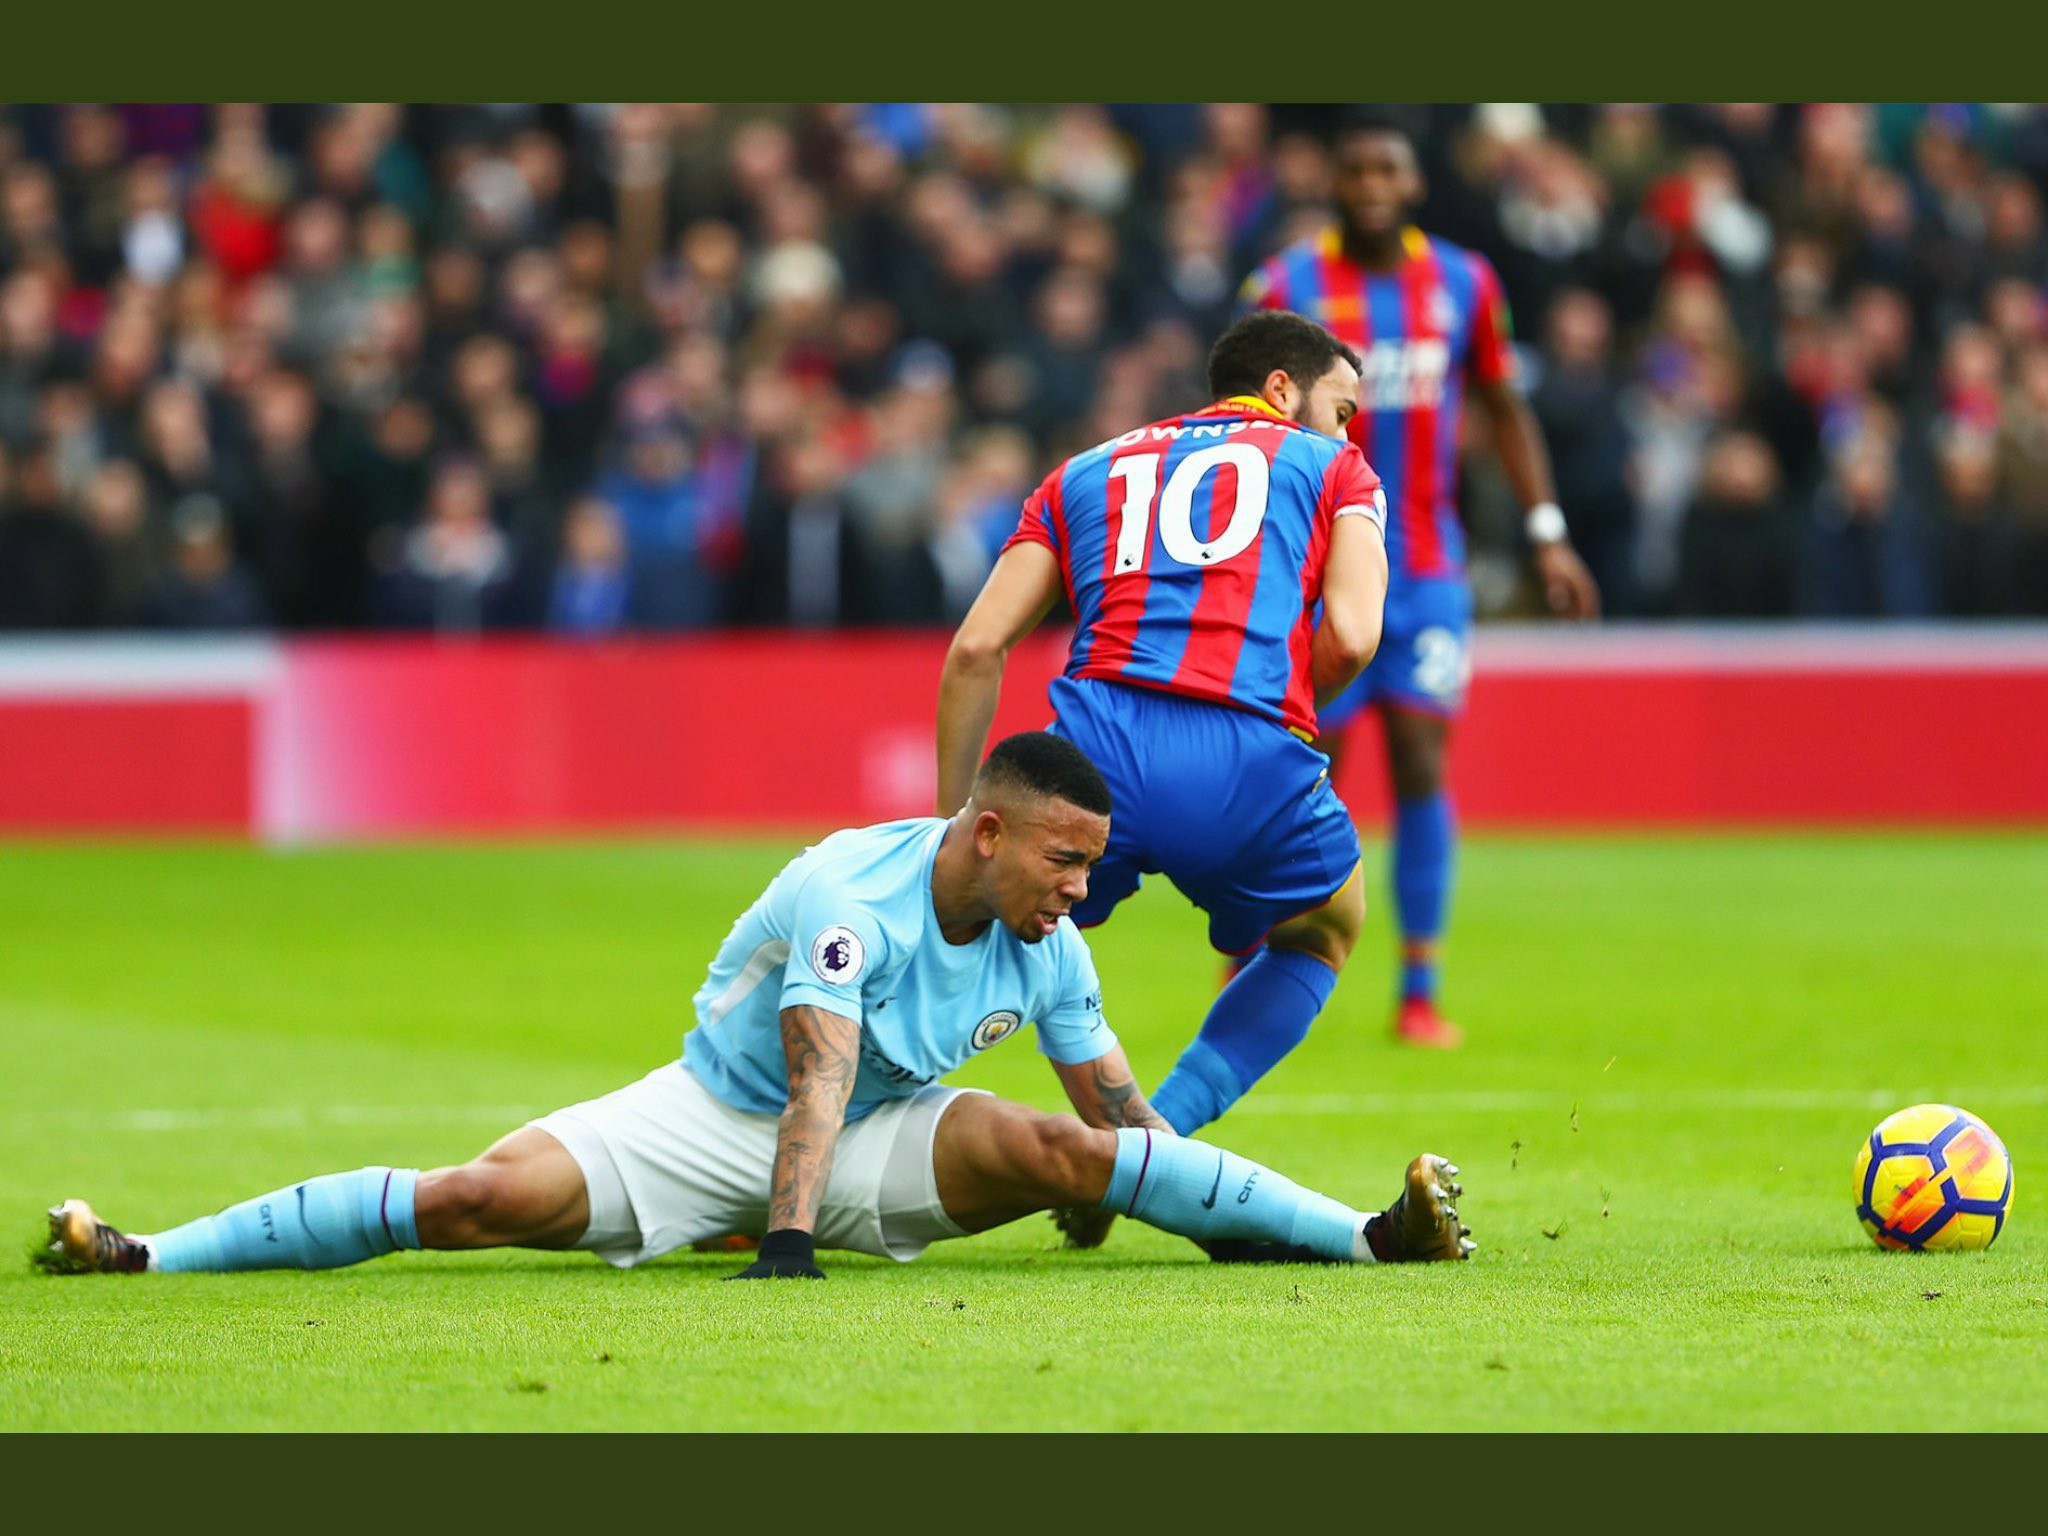 Crystal Palace-Manchester City 0-0: Guardiola non supera Guardiola, la serie si ferma a 18 successi di fila